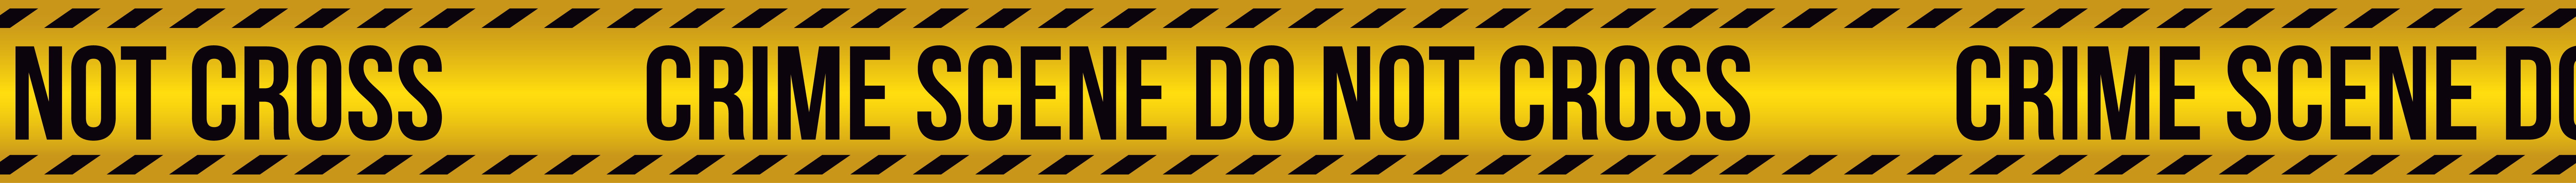 Download and use Police Tape PNG Image